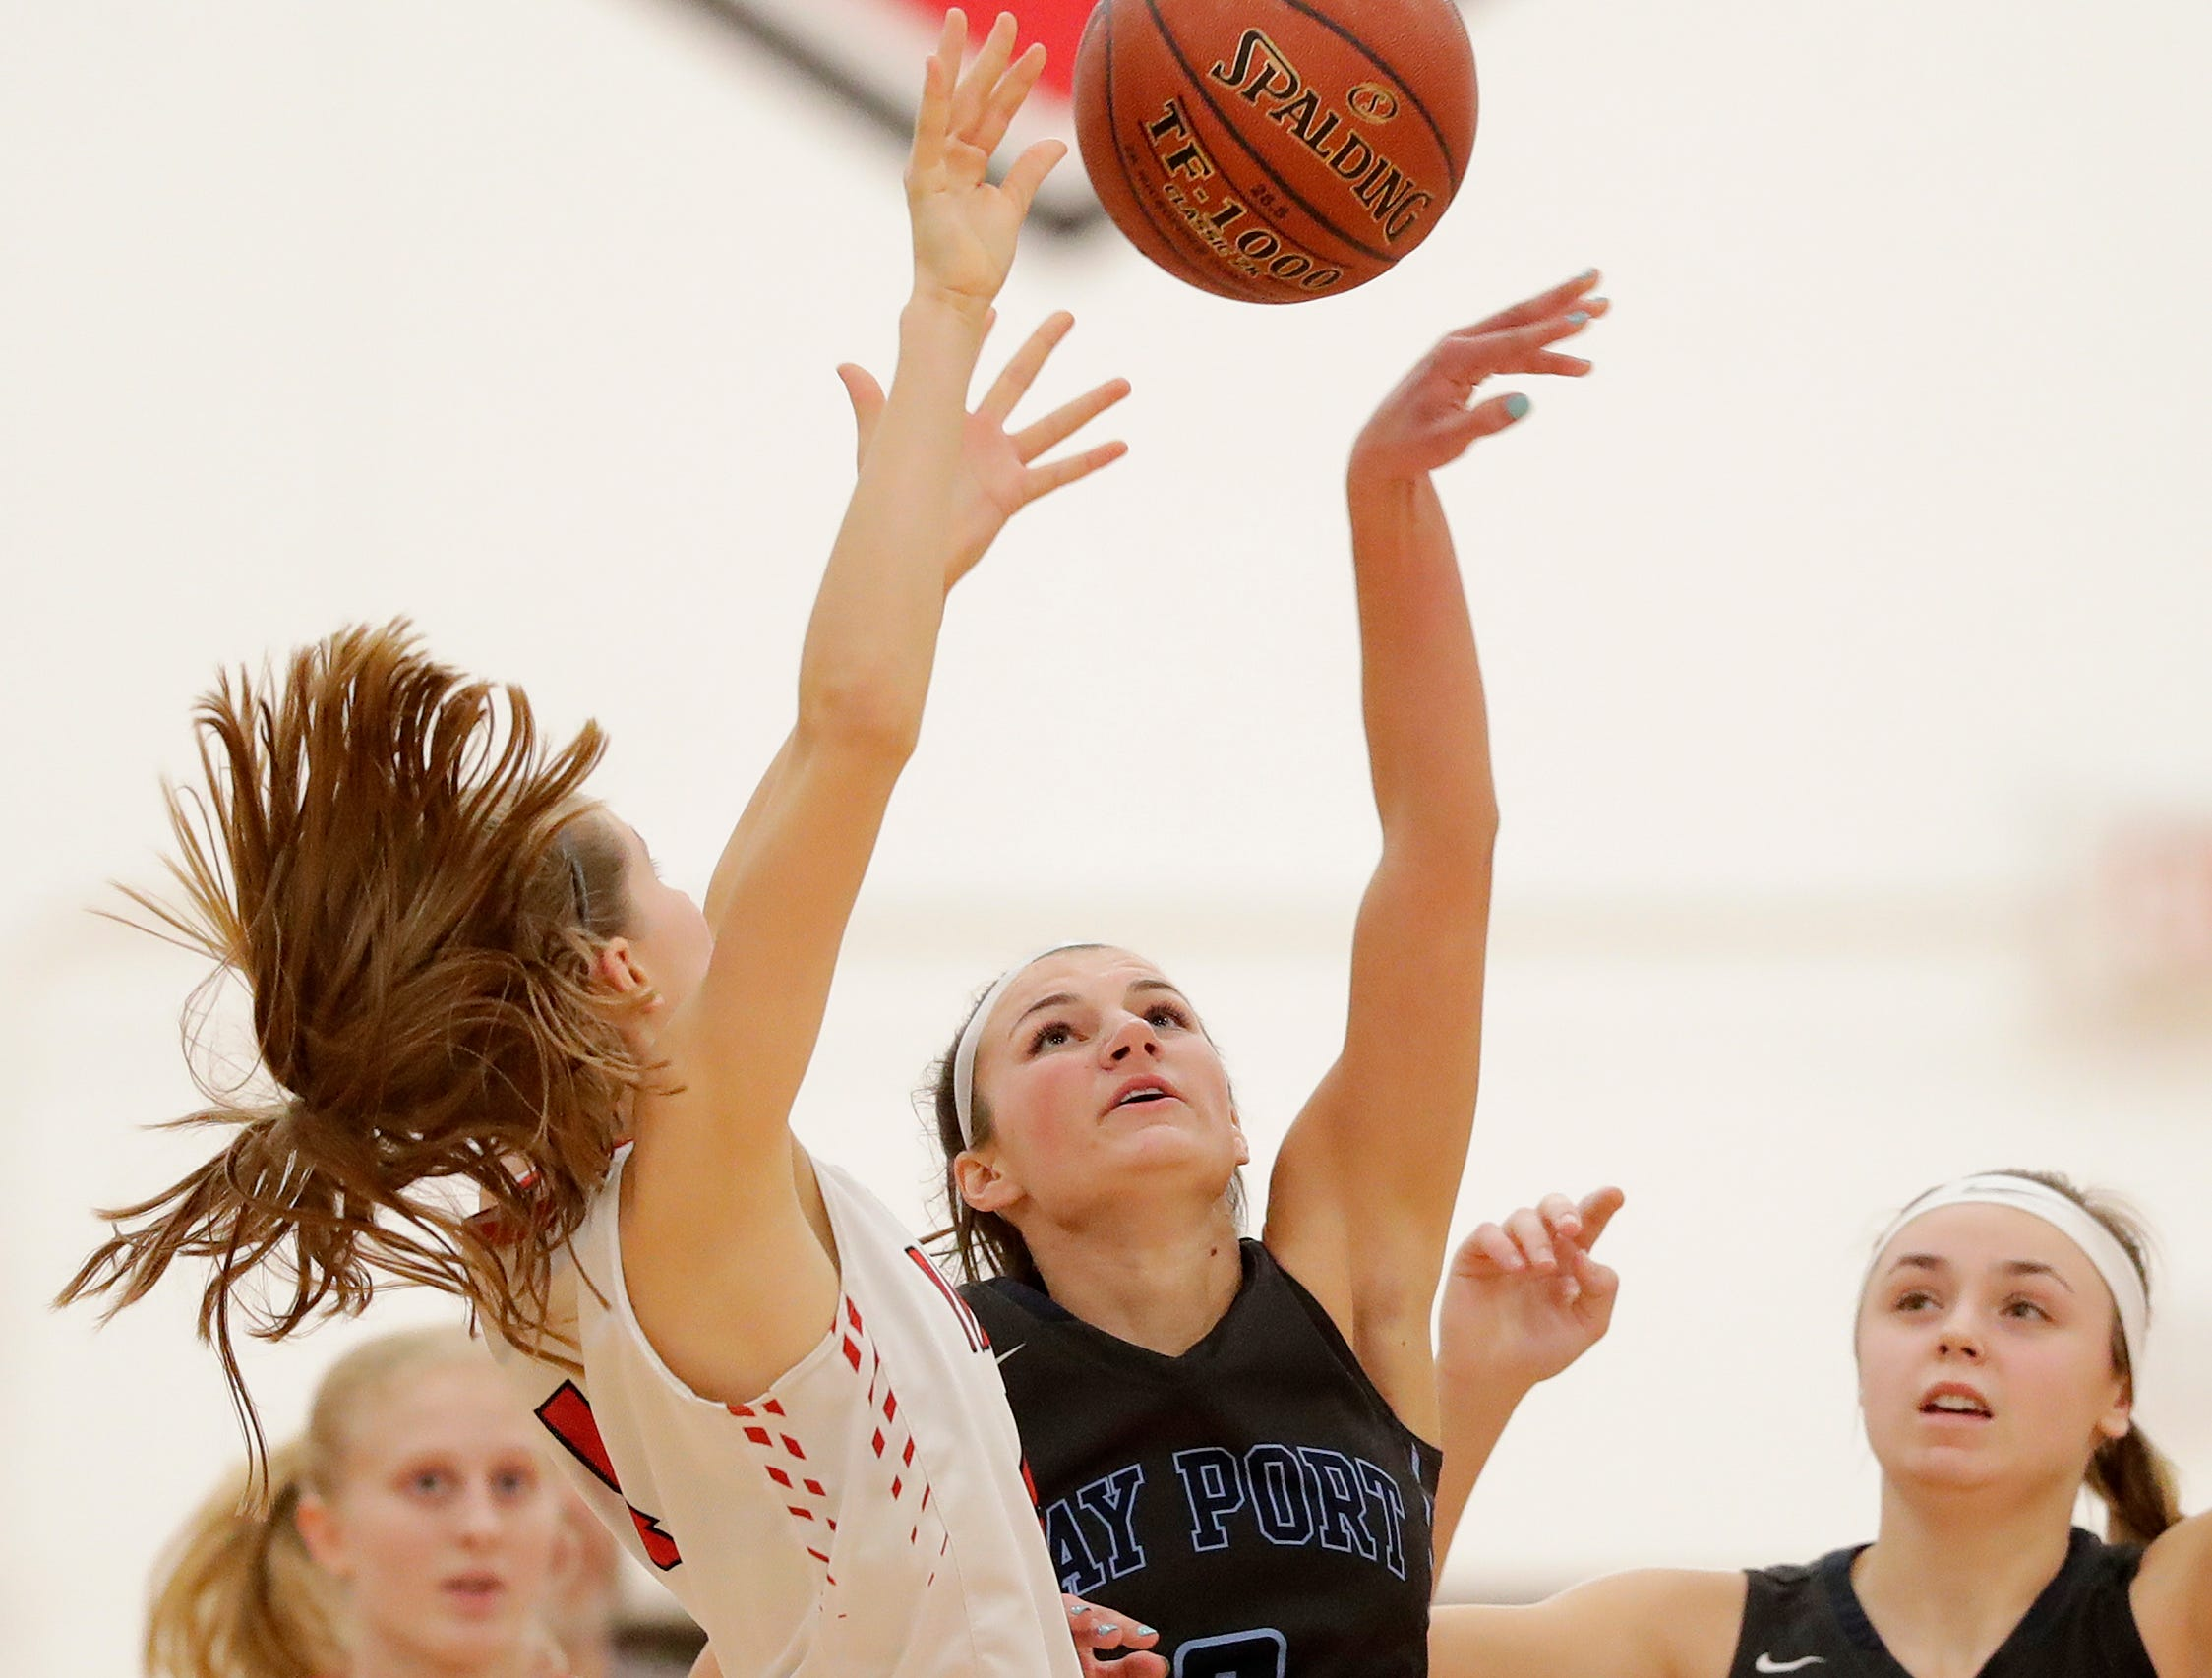 Bay Port's Grace Krause (2) blocks a shot by Pulaski's Sheridan Flauger (4) in a girls basketball game at Pulaski high school on Friday, January 4, 2019 in Pulaski, Wis.